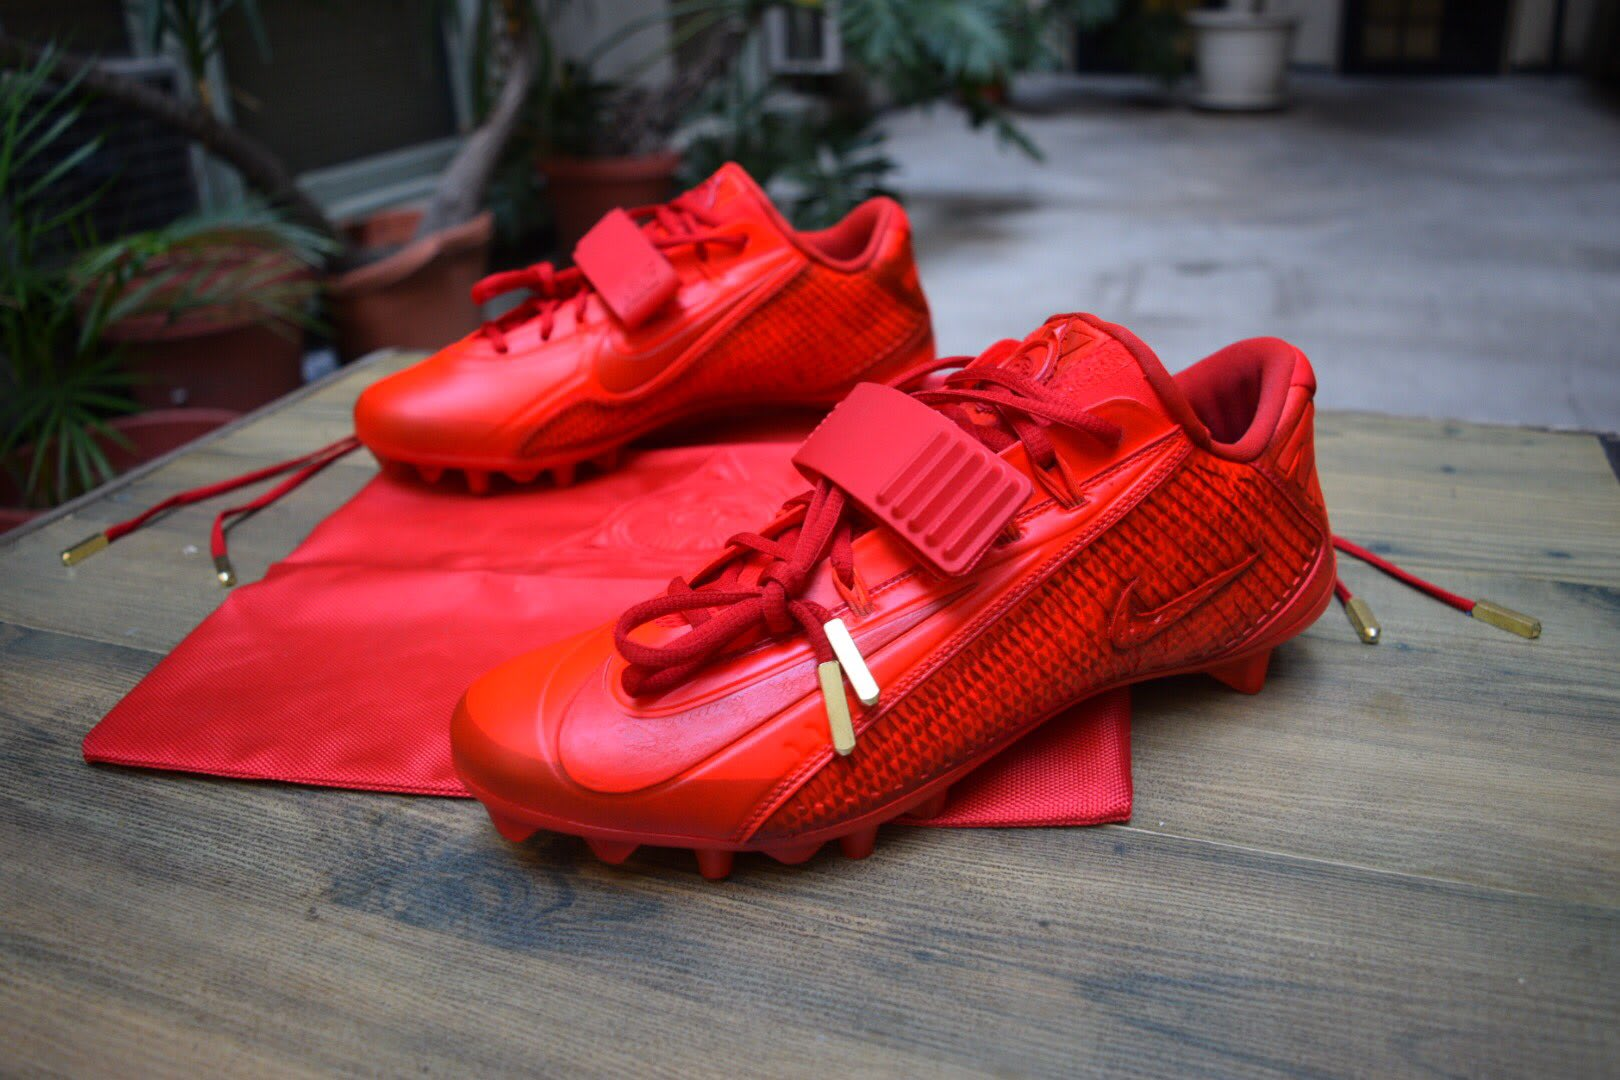 Odell Beckham Kanye West Murakami Graduation Red October Cleats by ...